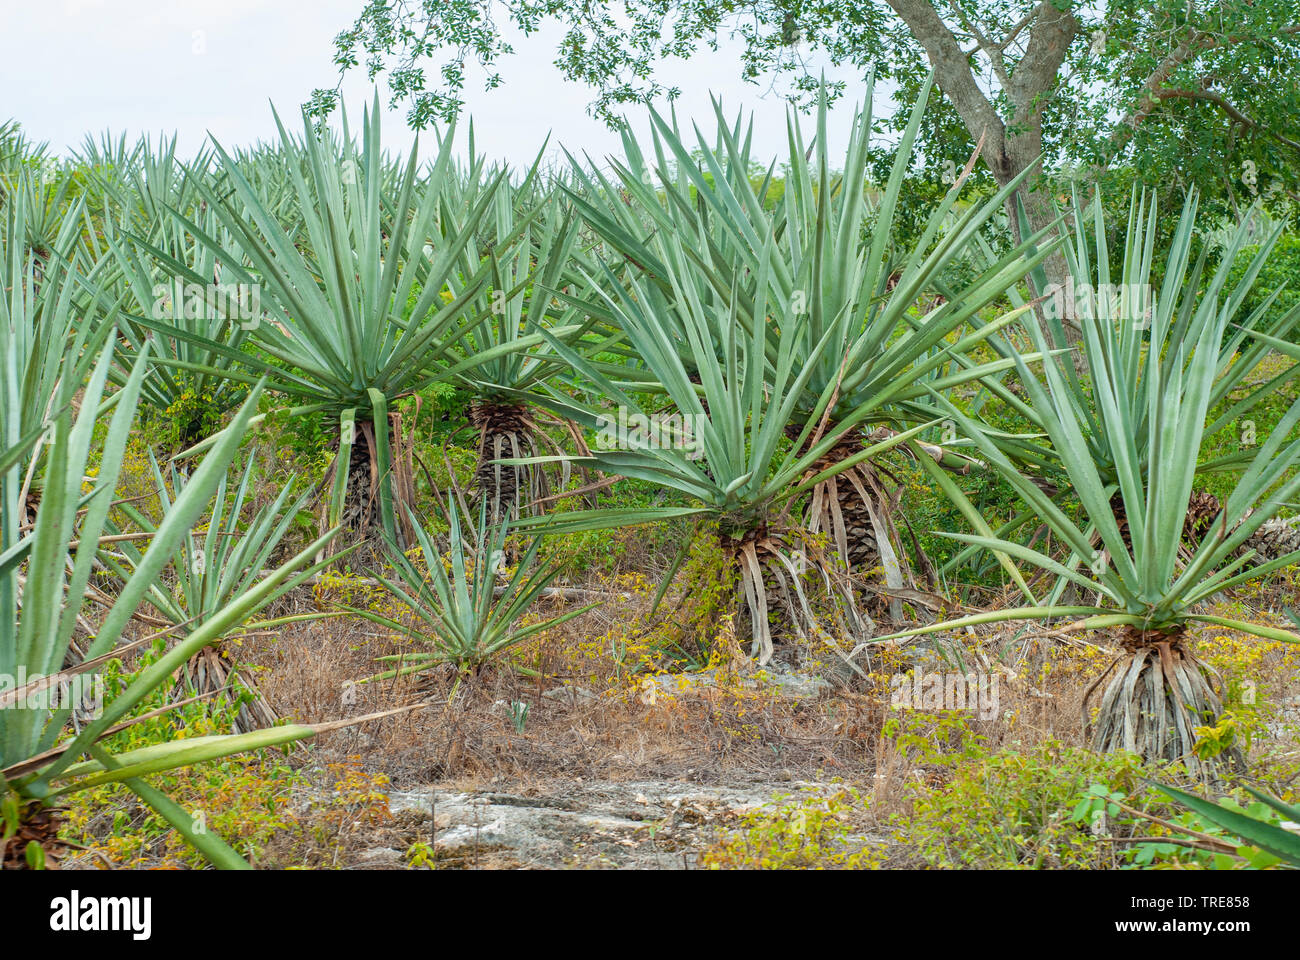 Agave plants, taken in the Tecoh plantations, in the Yucatan peninsula - Stock Image